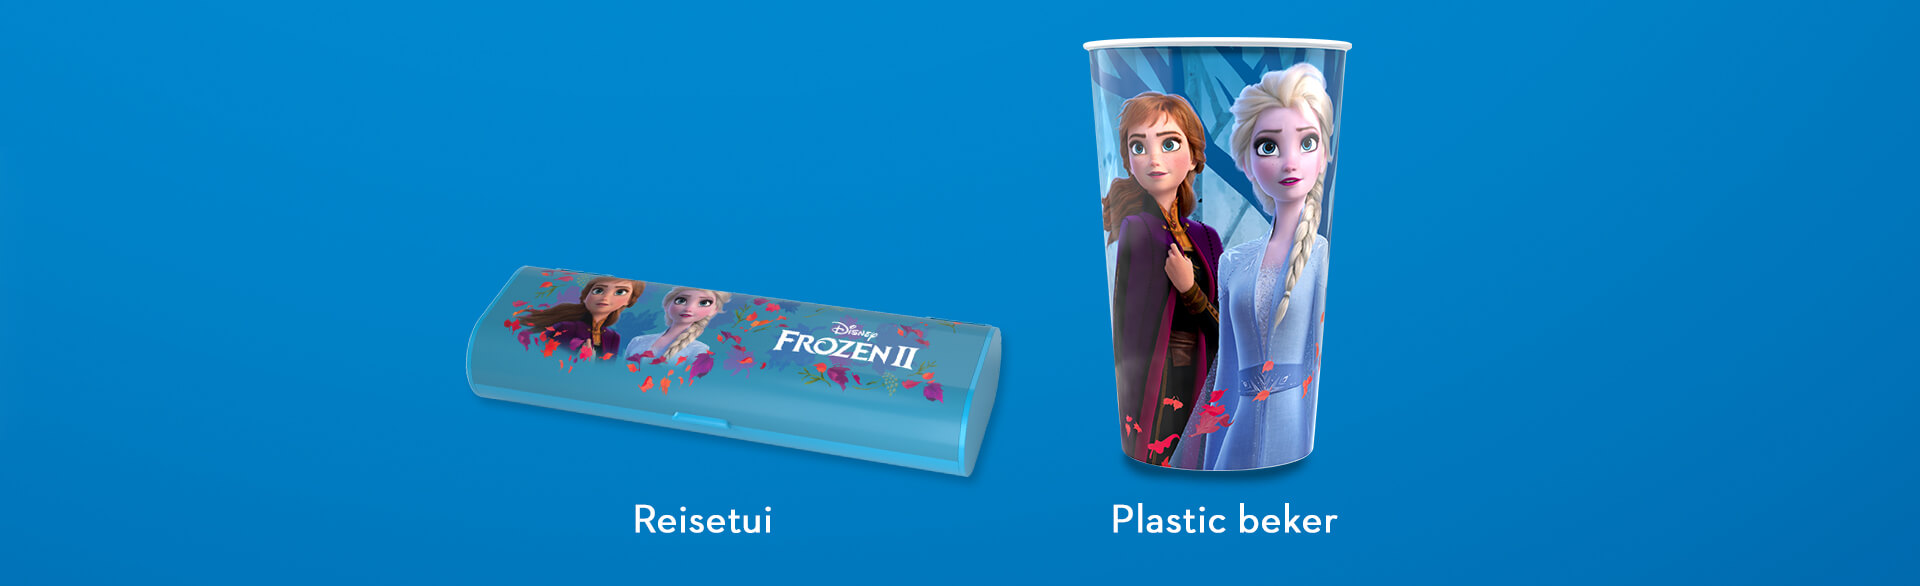 frozen free gifts